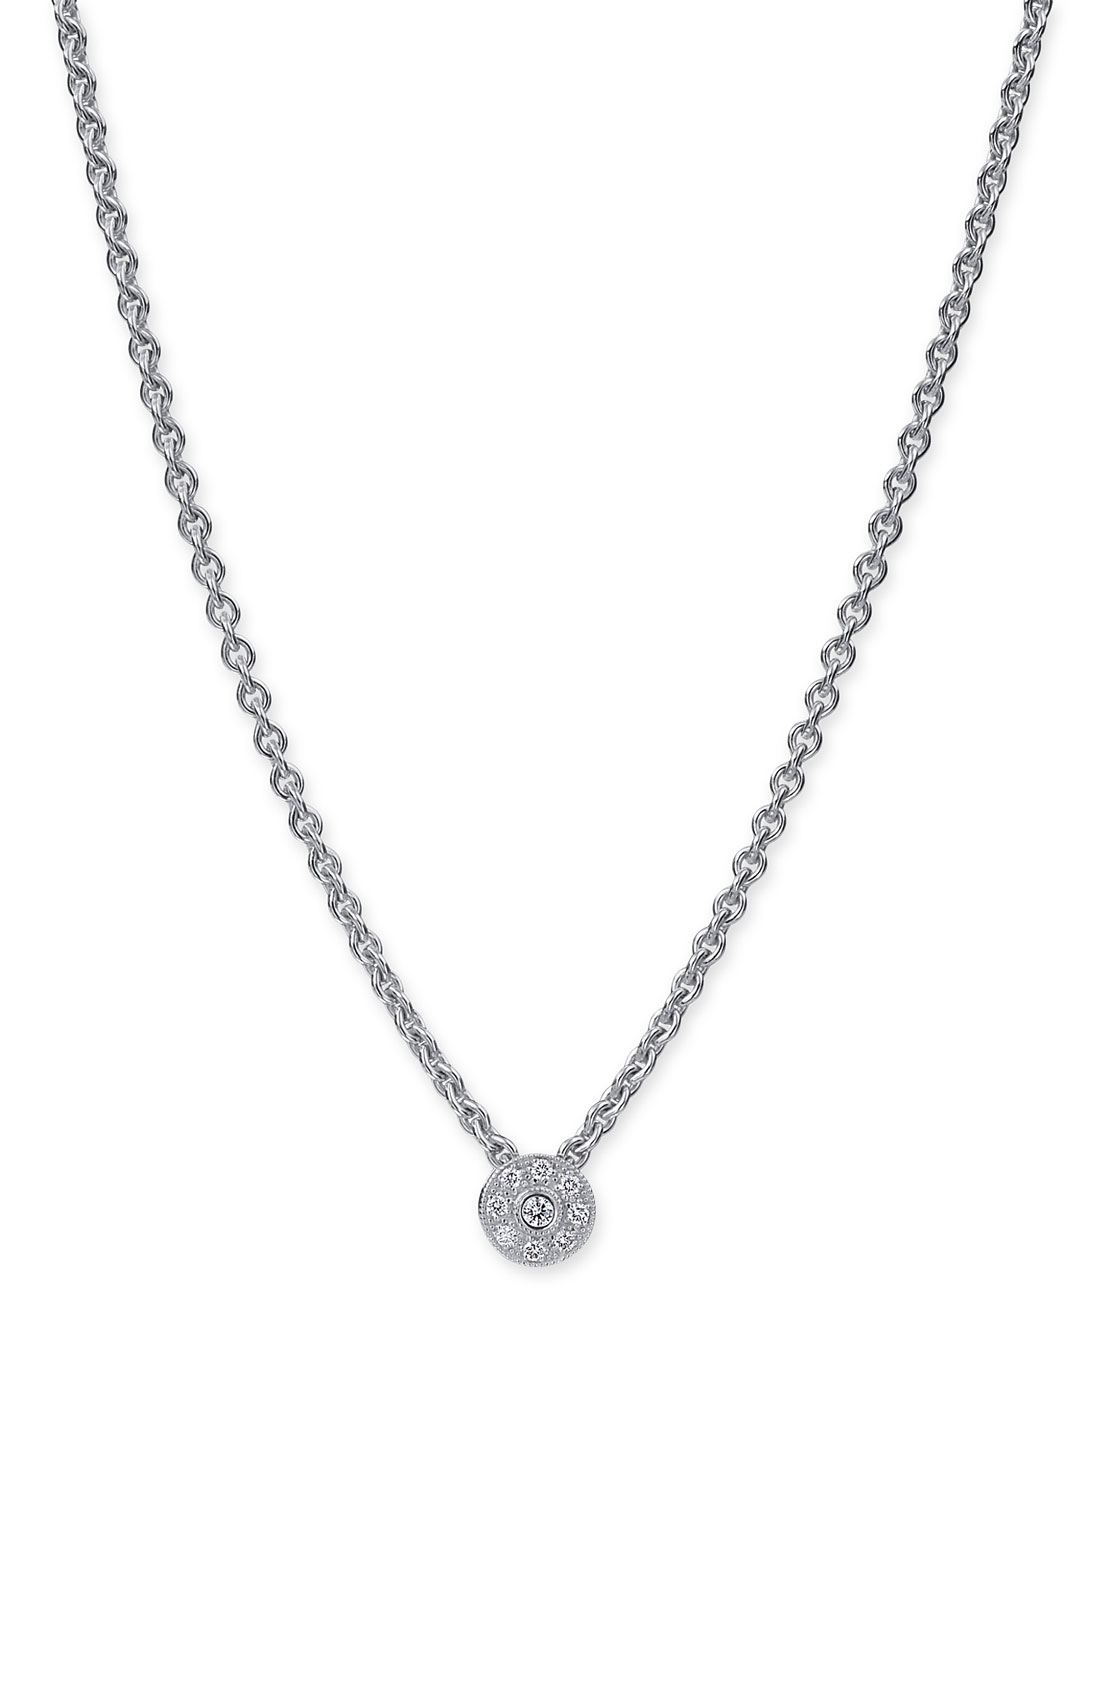 diamond necklace for women ruuuxqm